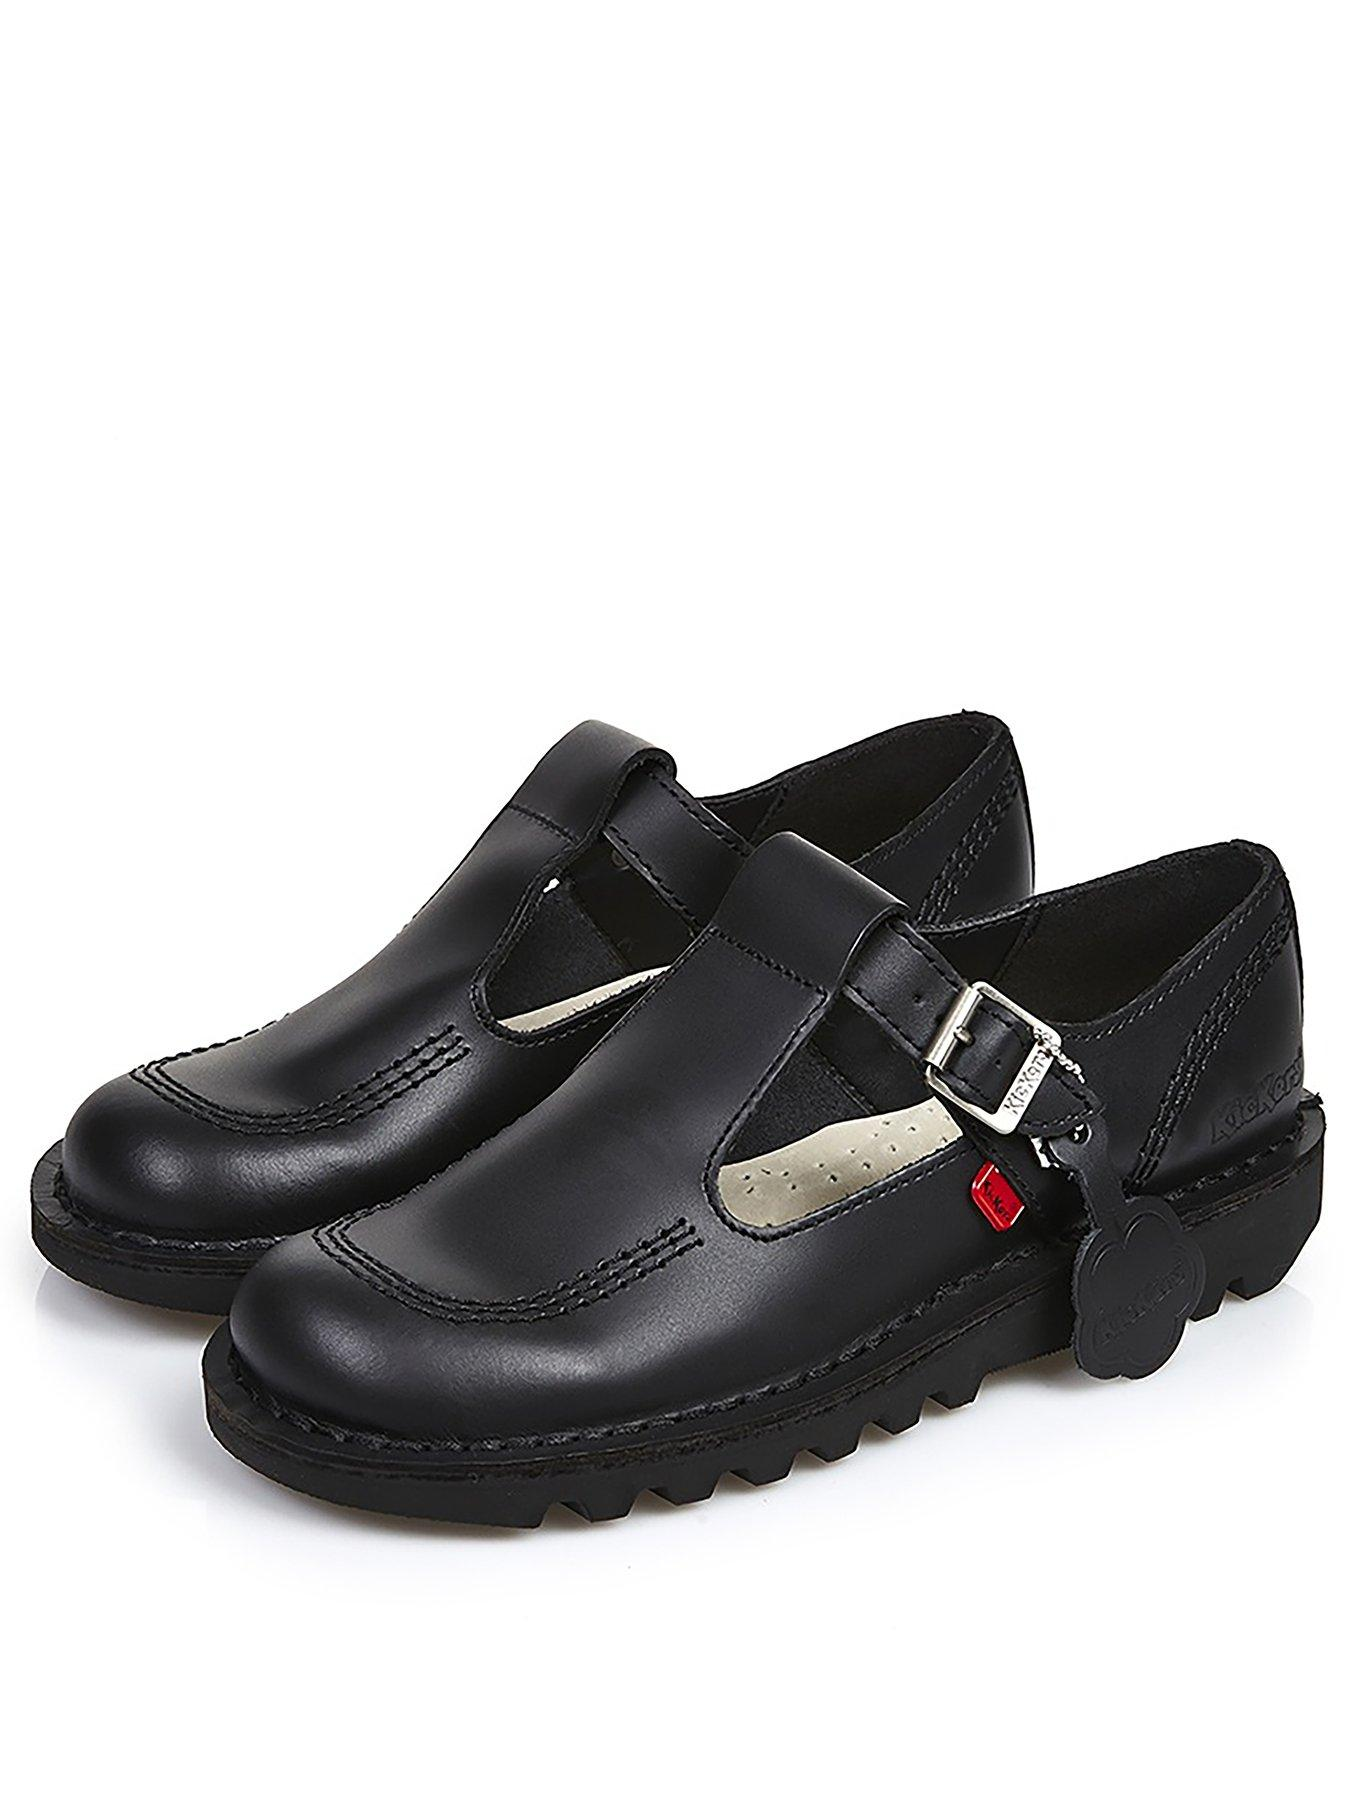 New Girls Kickers Black Fragma T-Bar Leather Shoes Flats